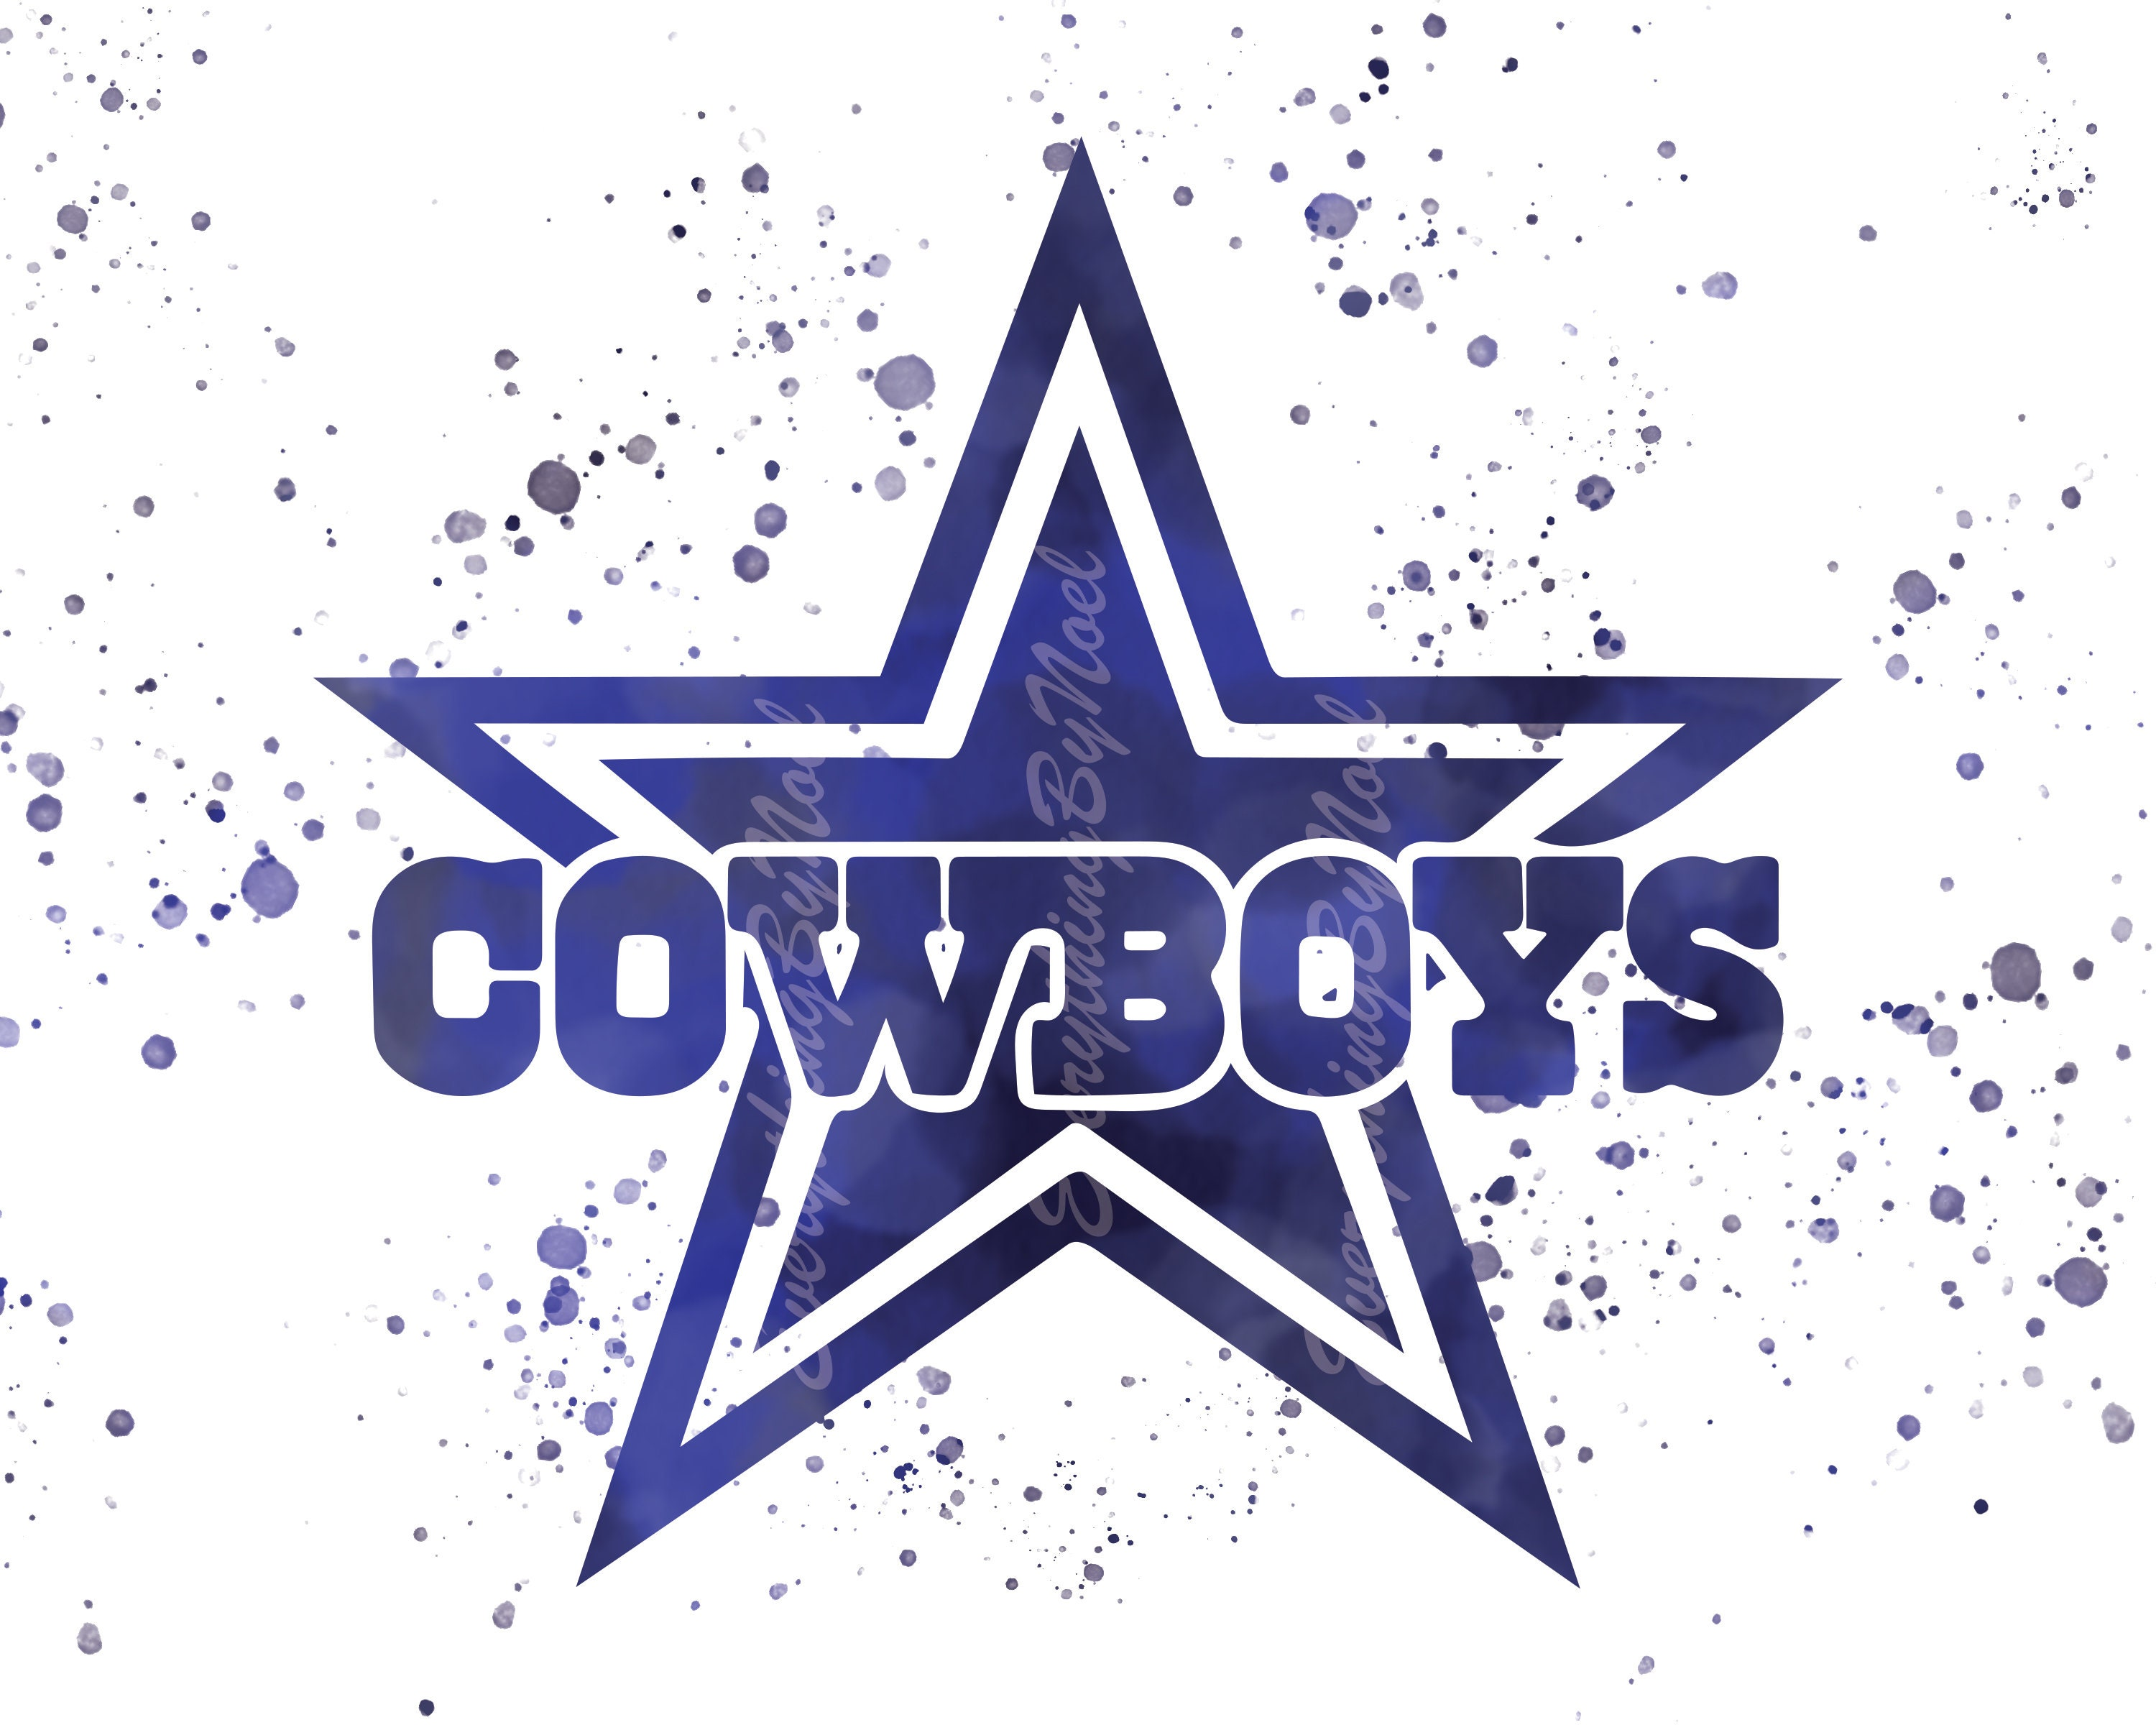 image relating to Dallas Cowboys Printable Logo known as Dallas Cowboys Printable Wall Artwork